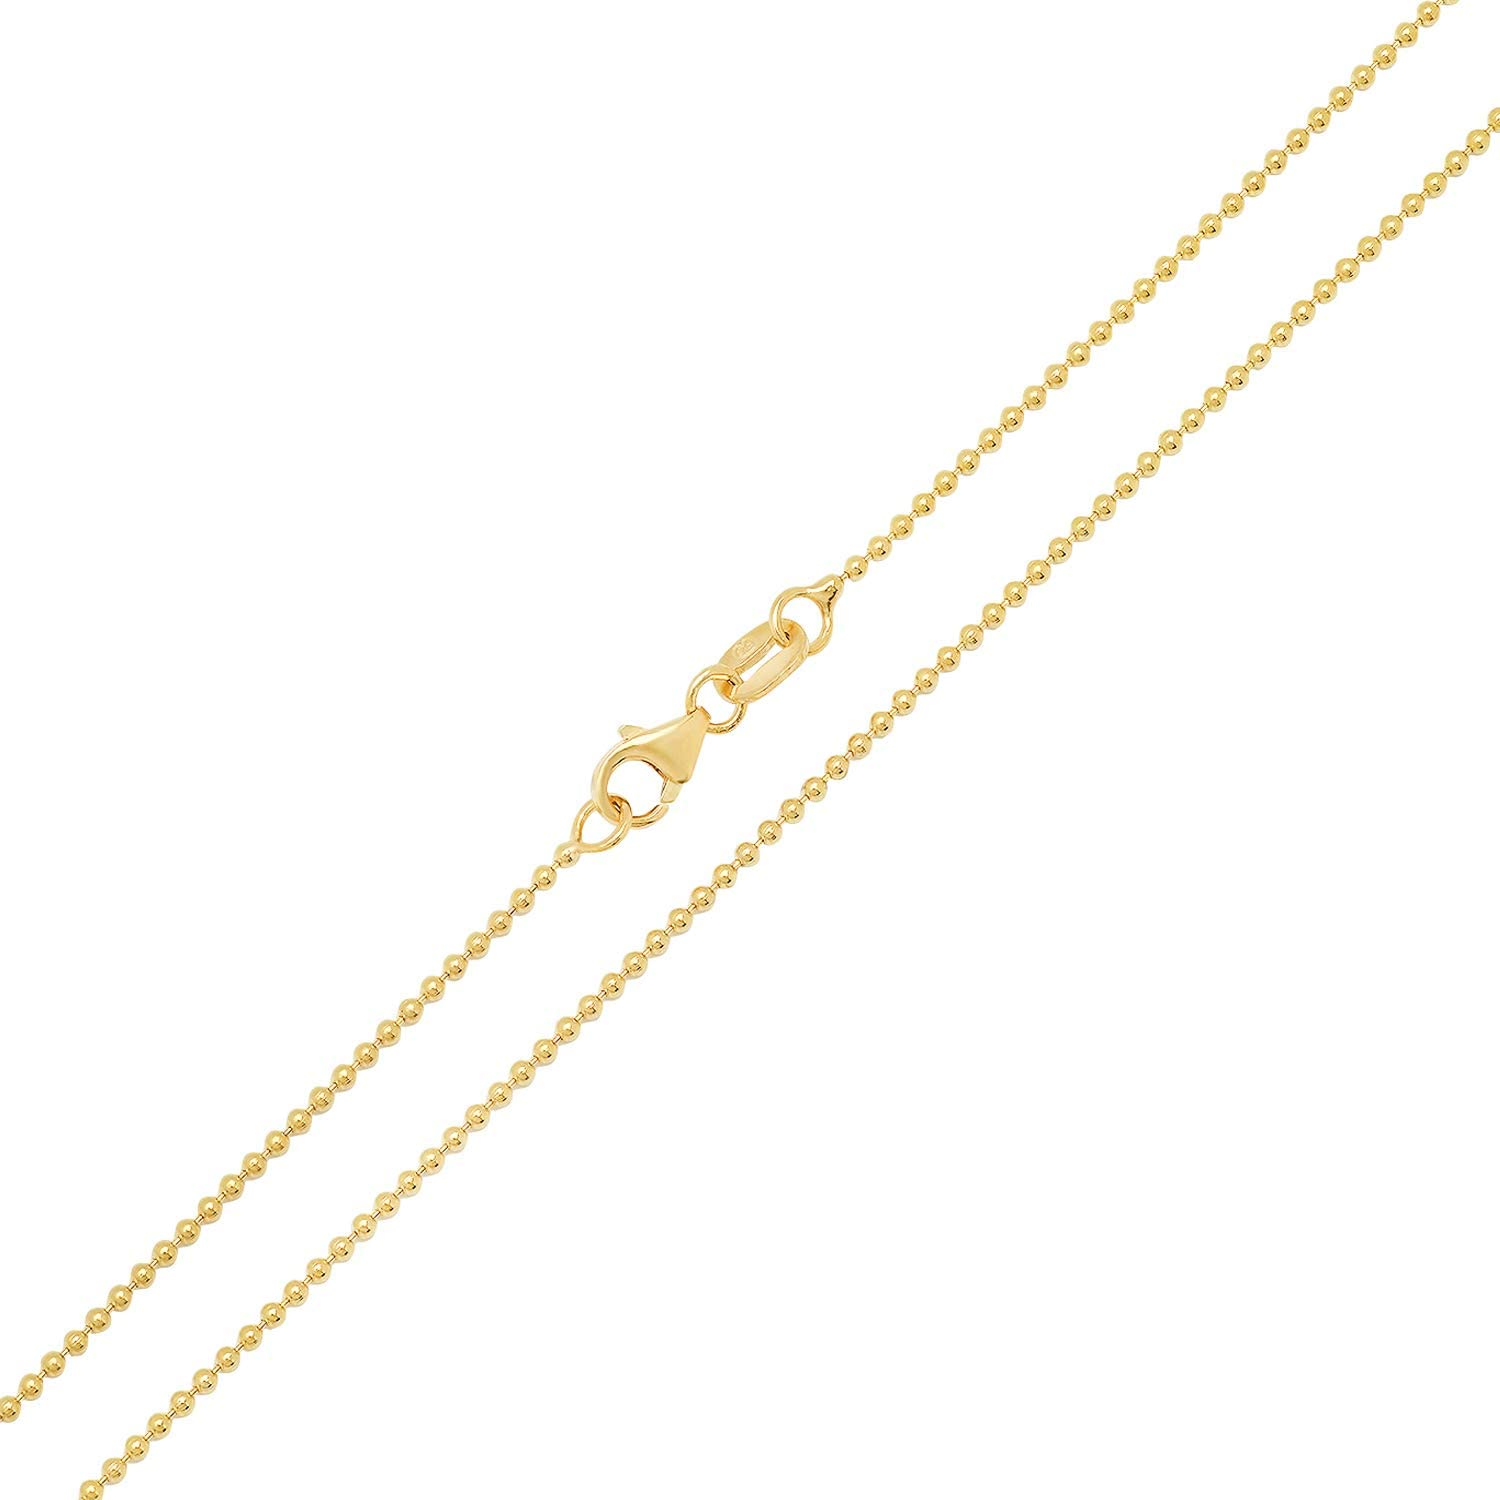 14K Yellow Gold 1.5mm Ball Link Chain Necklace with Lobster Ring Clasp 18 inches